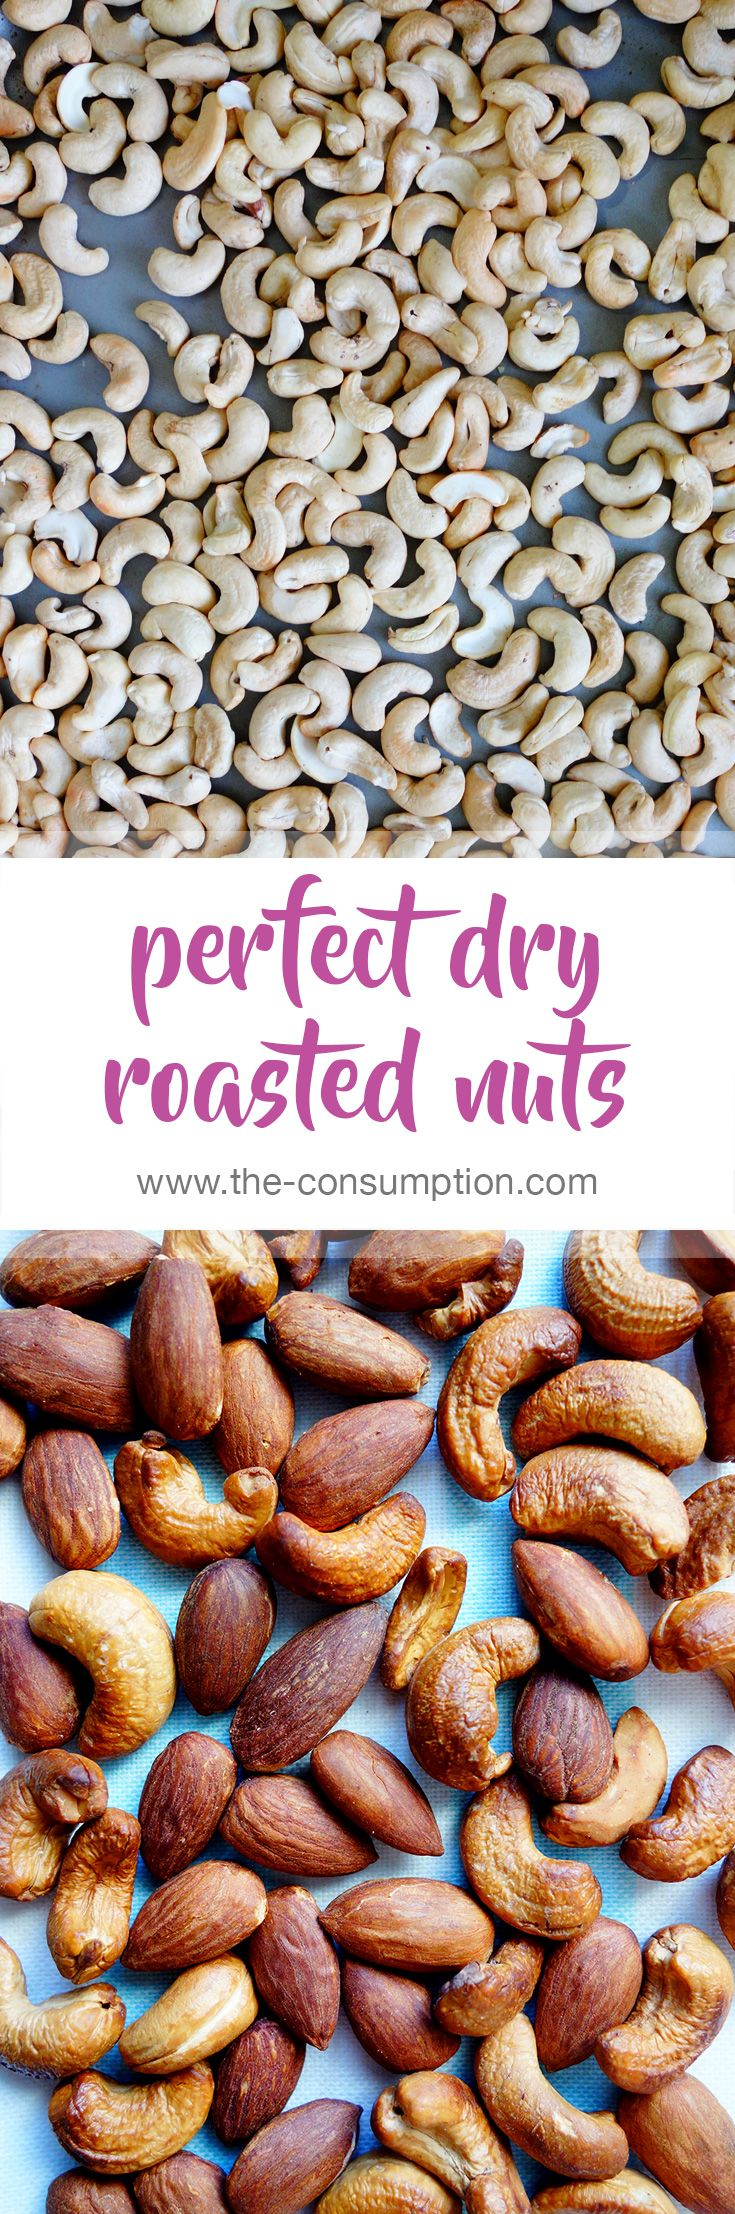 Make your own perfectly roasted nuts every time! They're the perfect portable paleo snack, can be used in multiple dishes, you can make nut butter out of them, they're nutrient dense and taste pretty darn delicious.